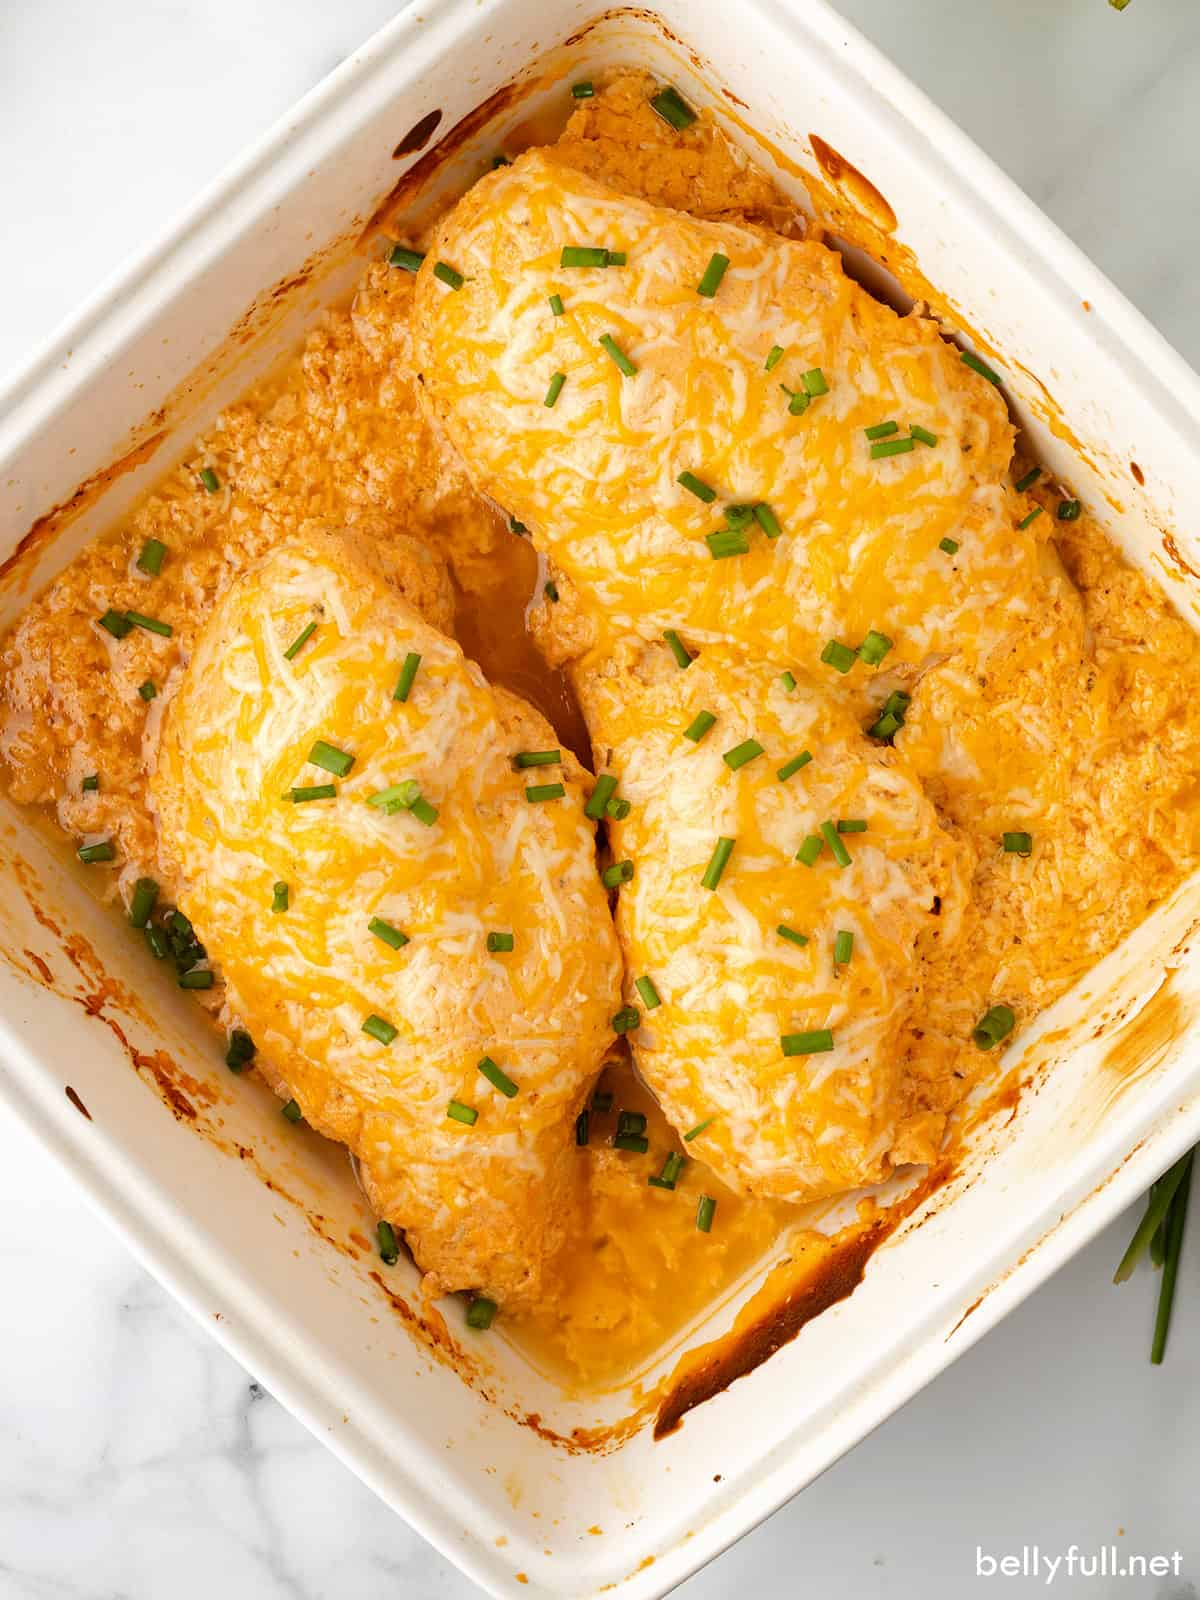 Buffalo chicken breasts in a baking dish topped with lots of cheese